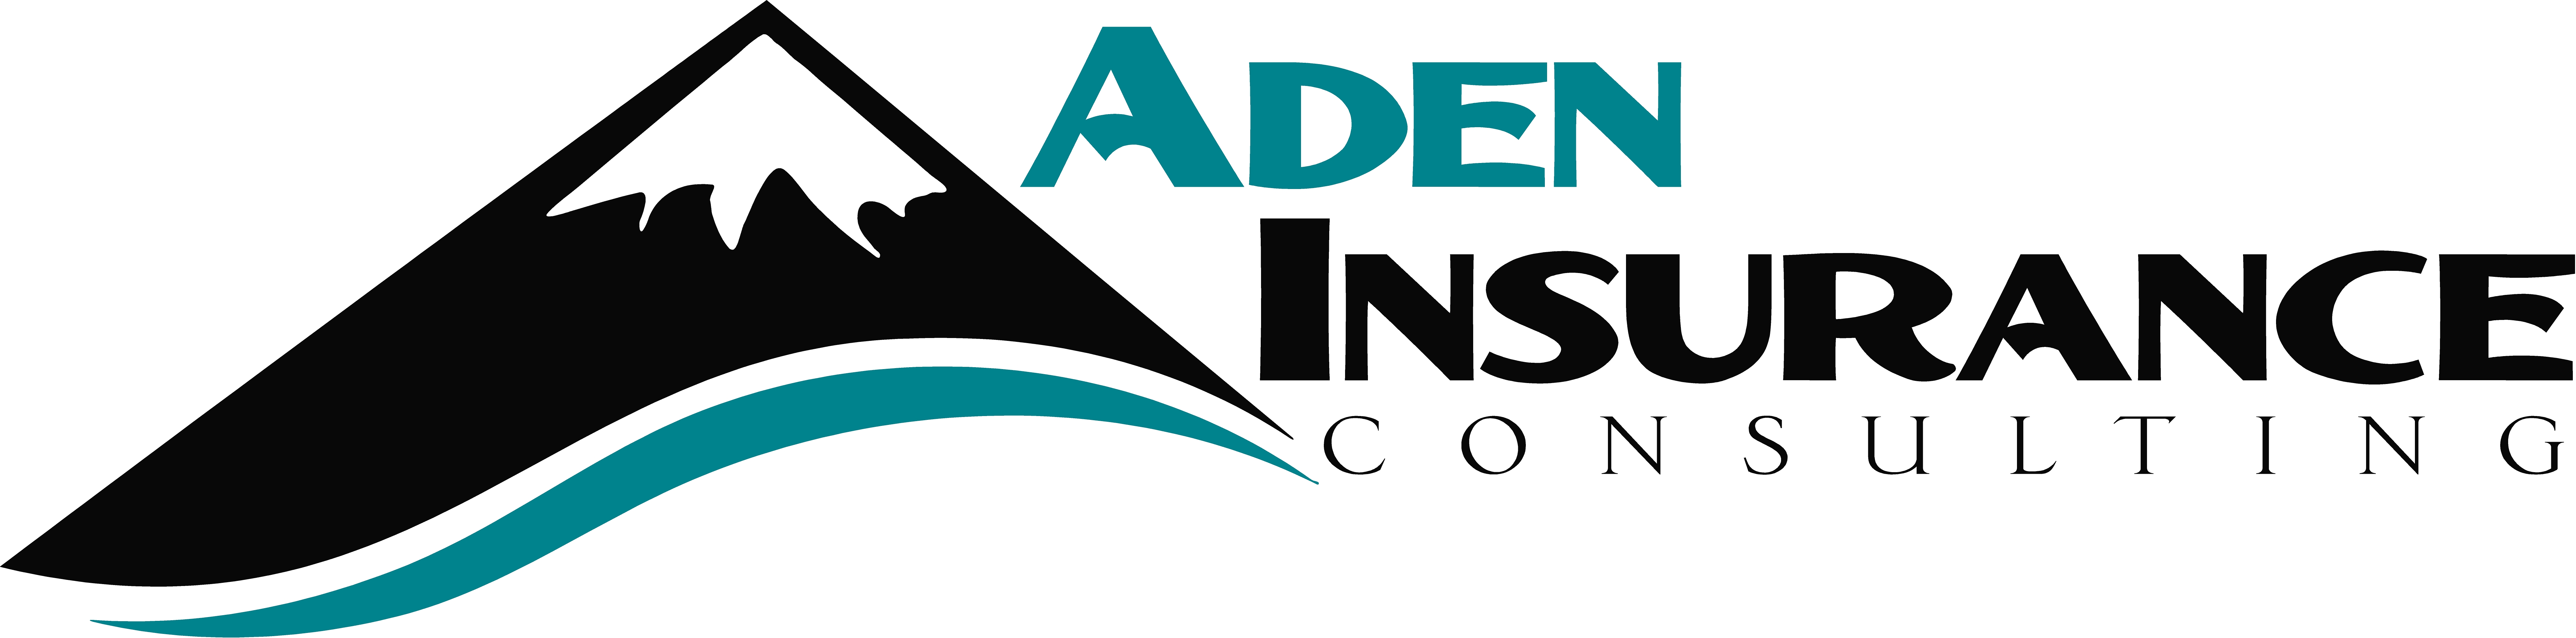 Aden Insurance Consulting - The employee benefits broker and group health insurance advisor in Canton